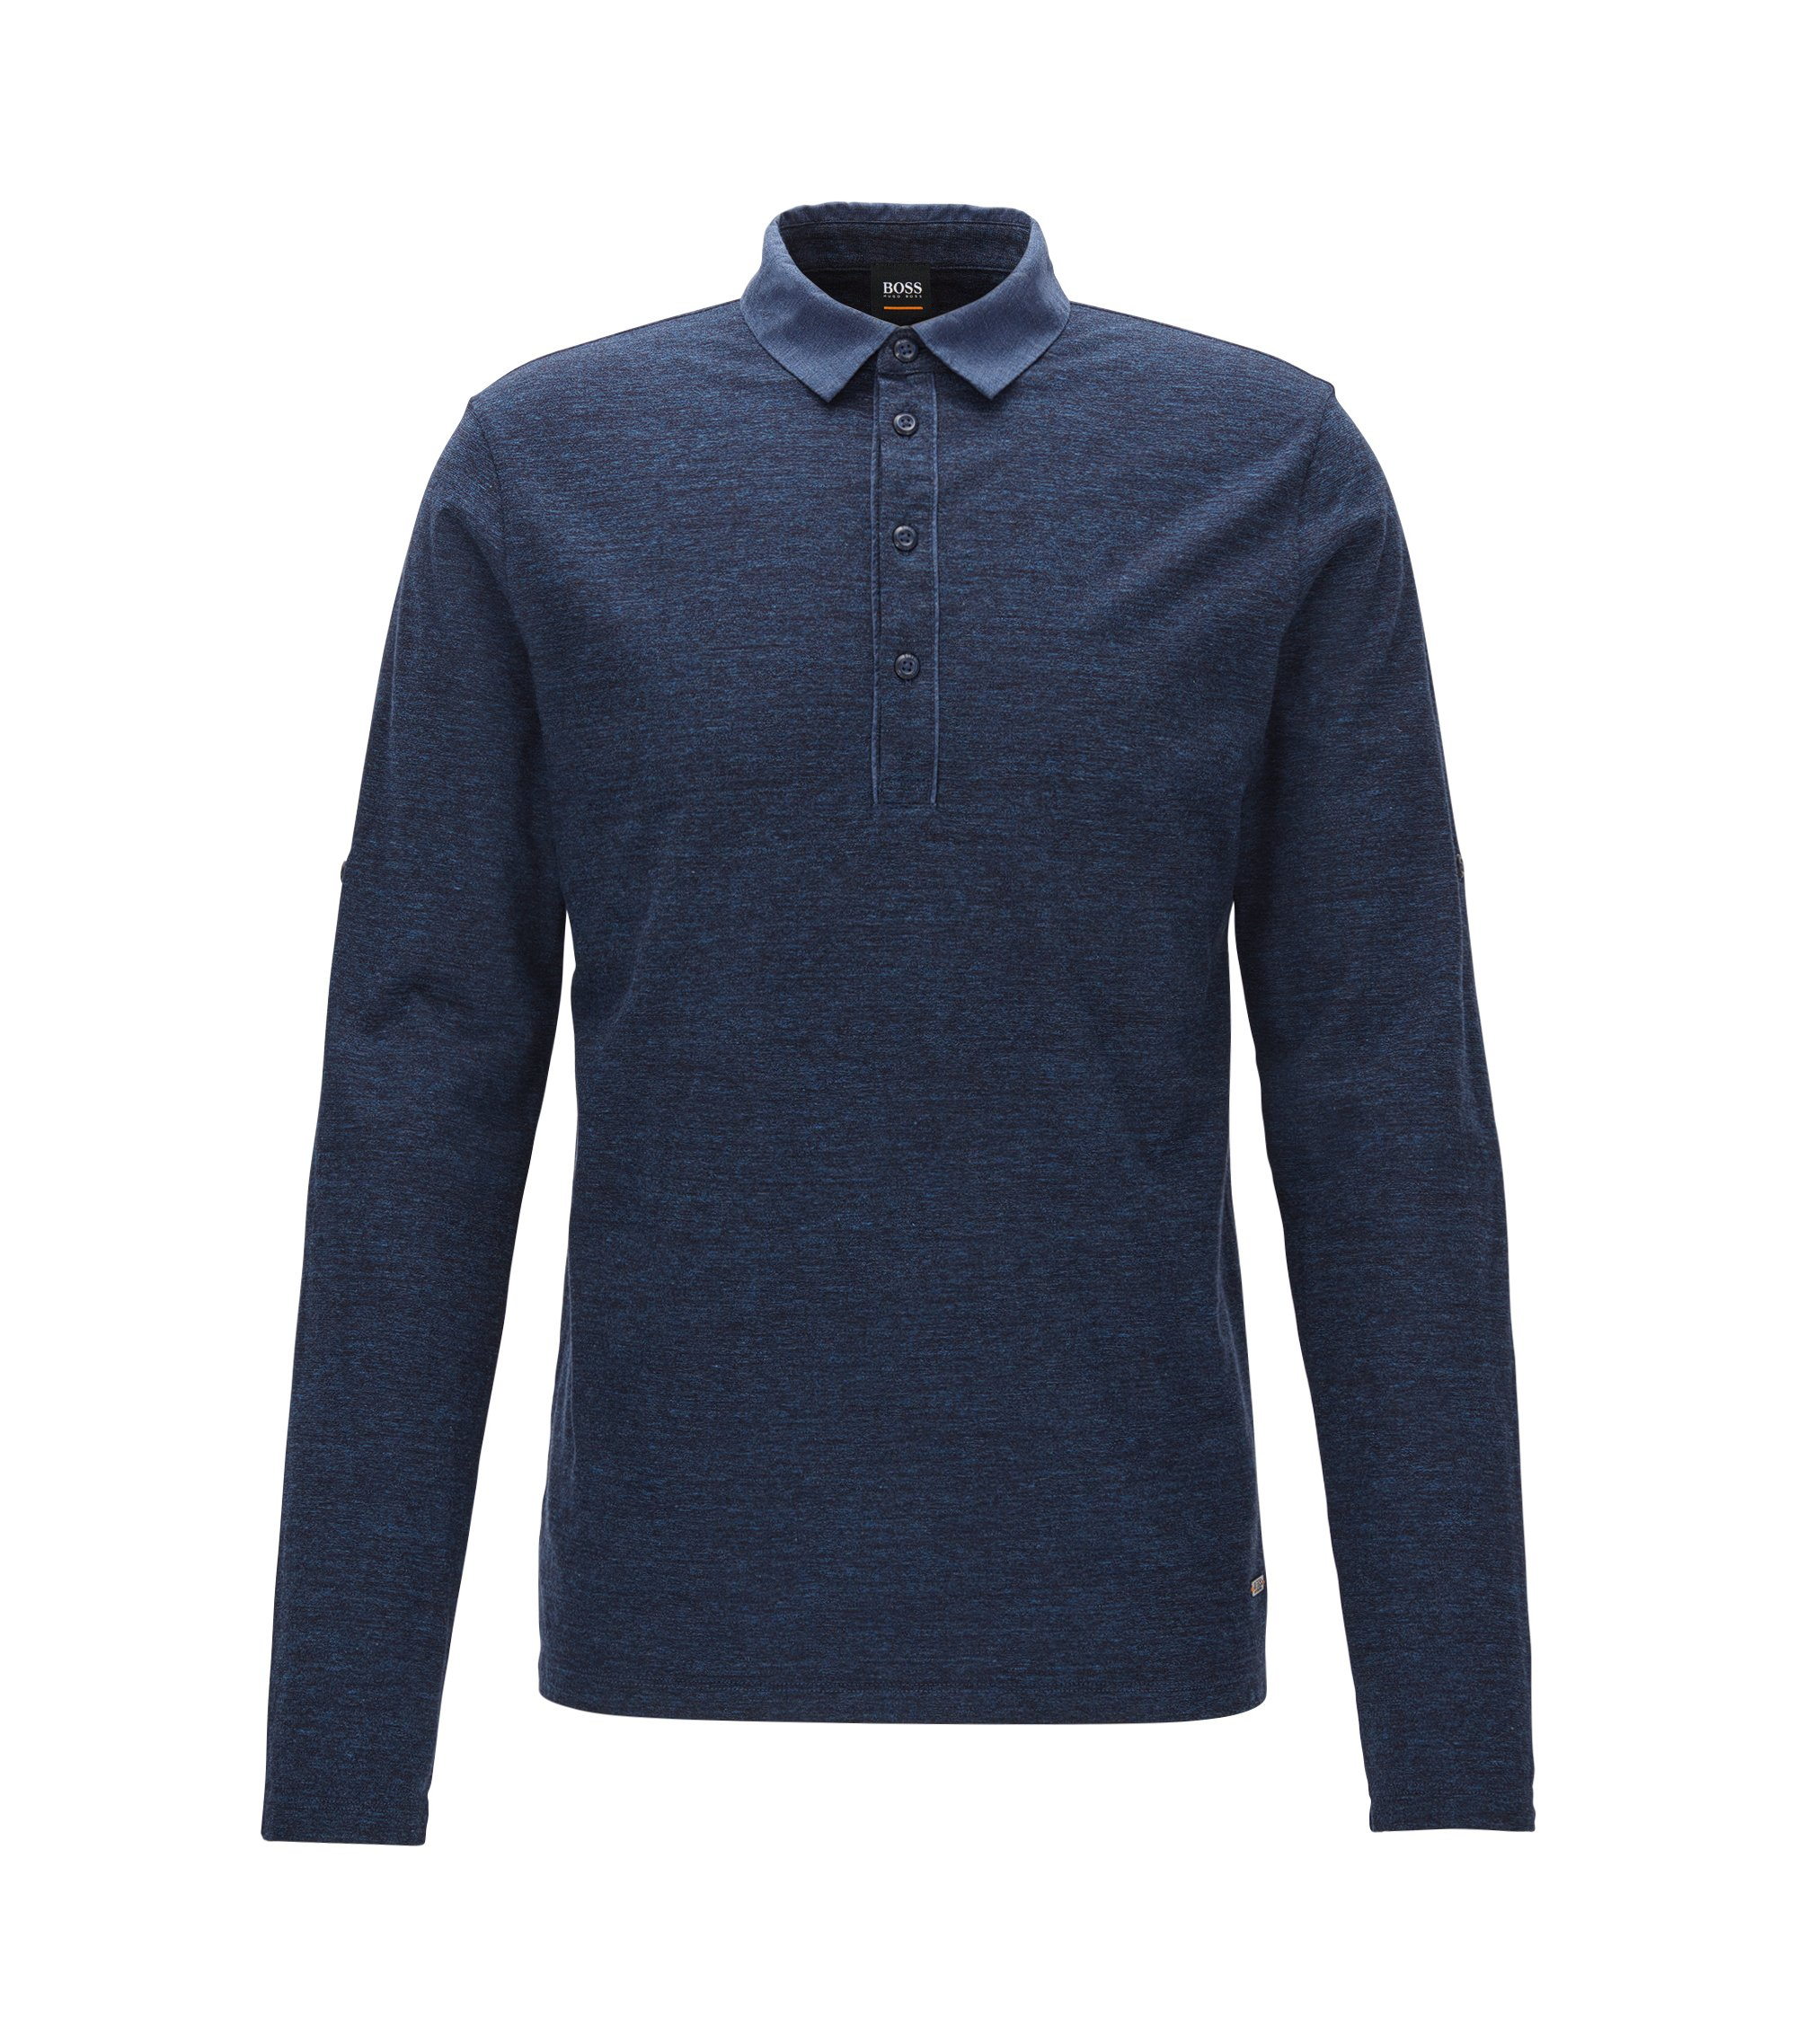 Polo a maniche lunghe regular fit in jersey di cotone mélange, Blu scuro